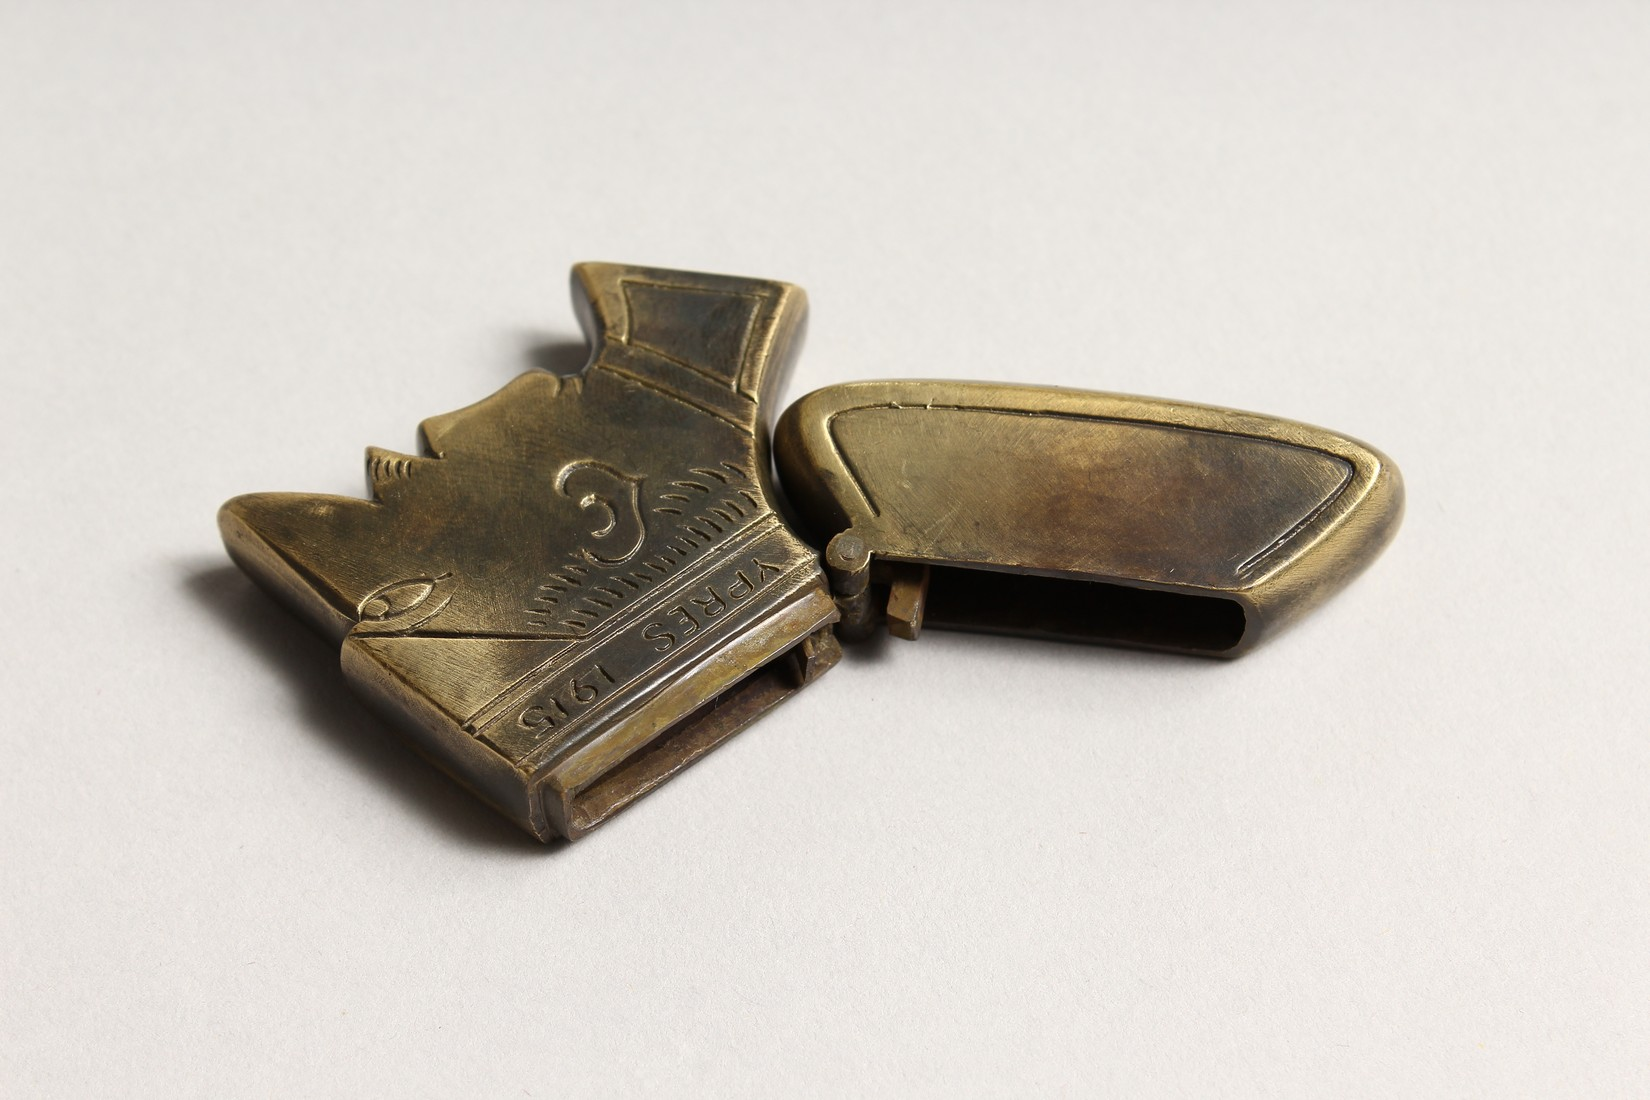 A FIRST WORLD WAR BRASS REPLICA YPRES VESTA CASE 2ins long. - Image 3 of 3